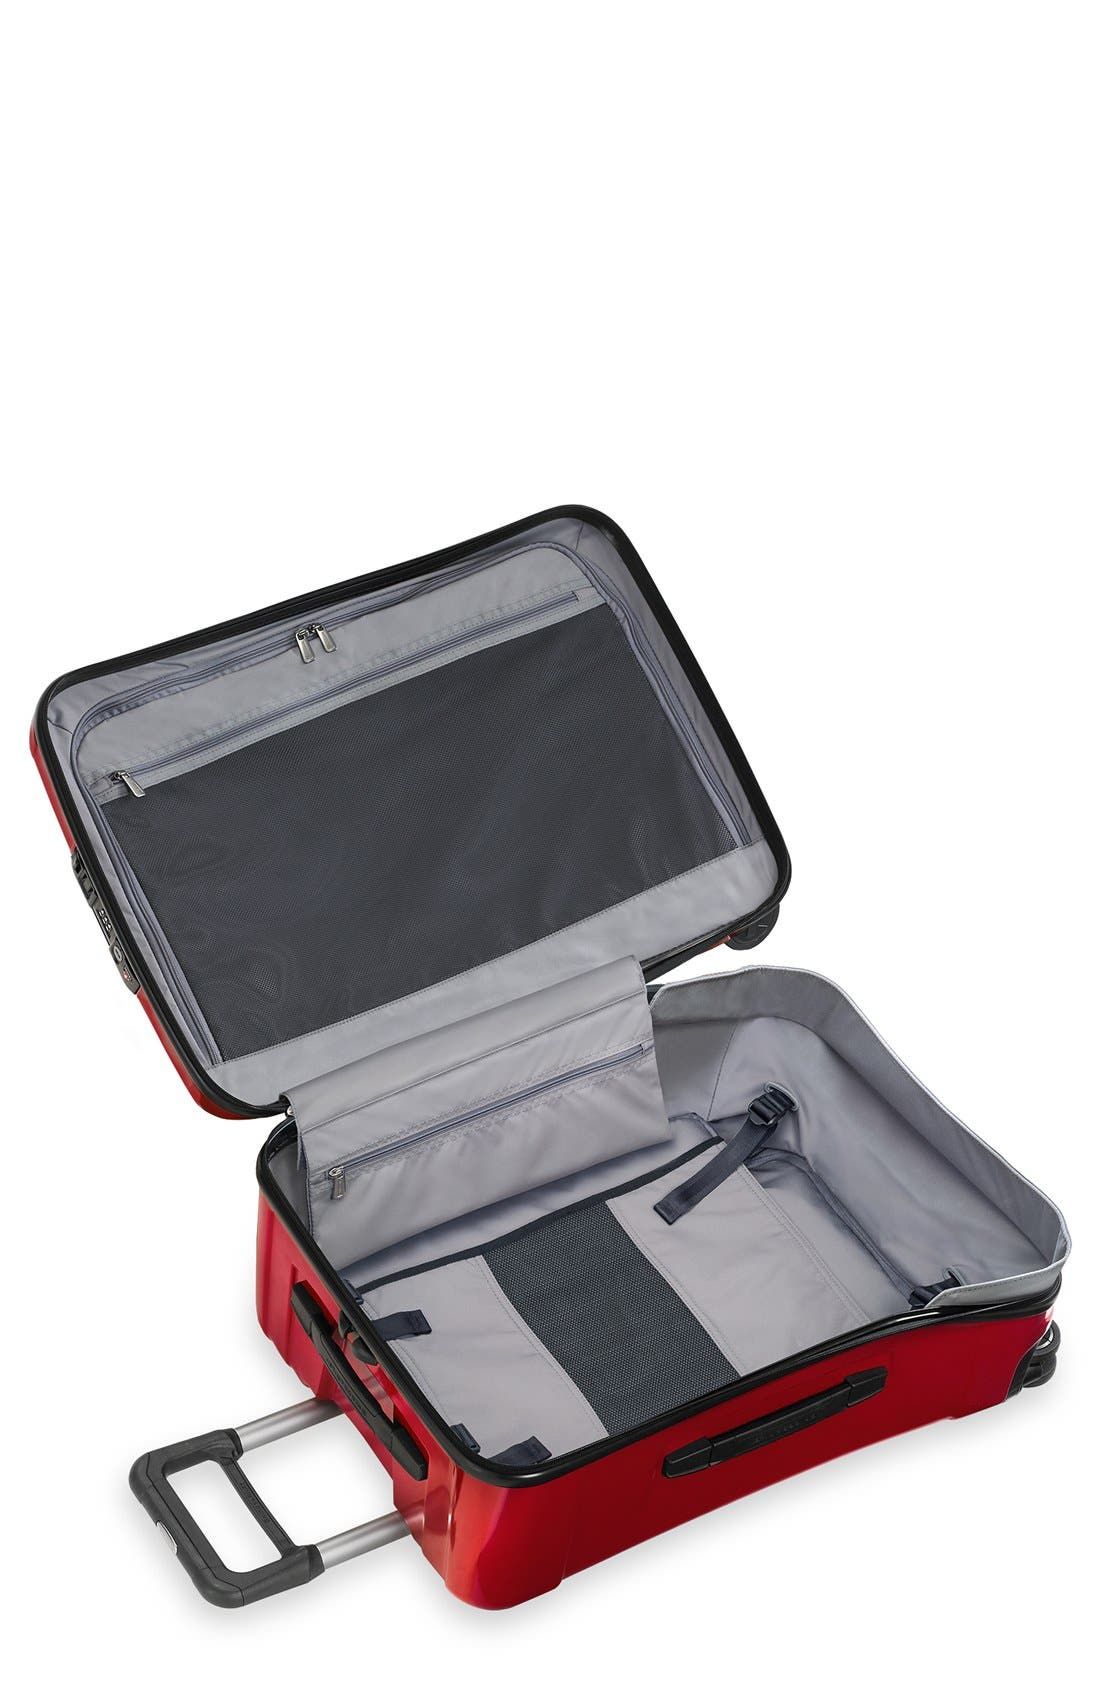 Alternate Image 1 Selected - Briggs & Riley 'Medium Torq' Spinner Packing Case (24 Inch)